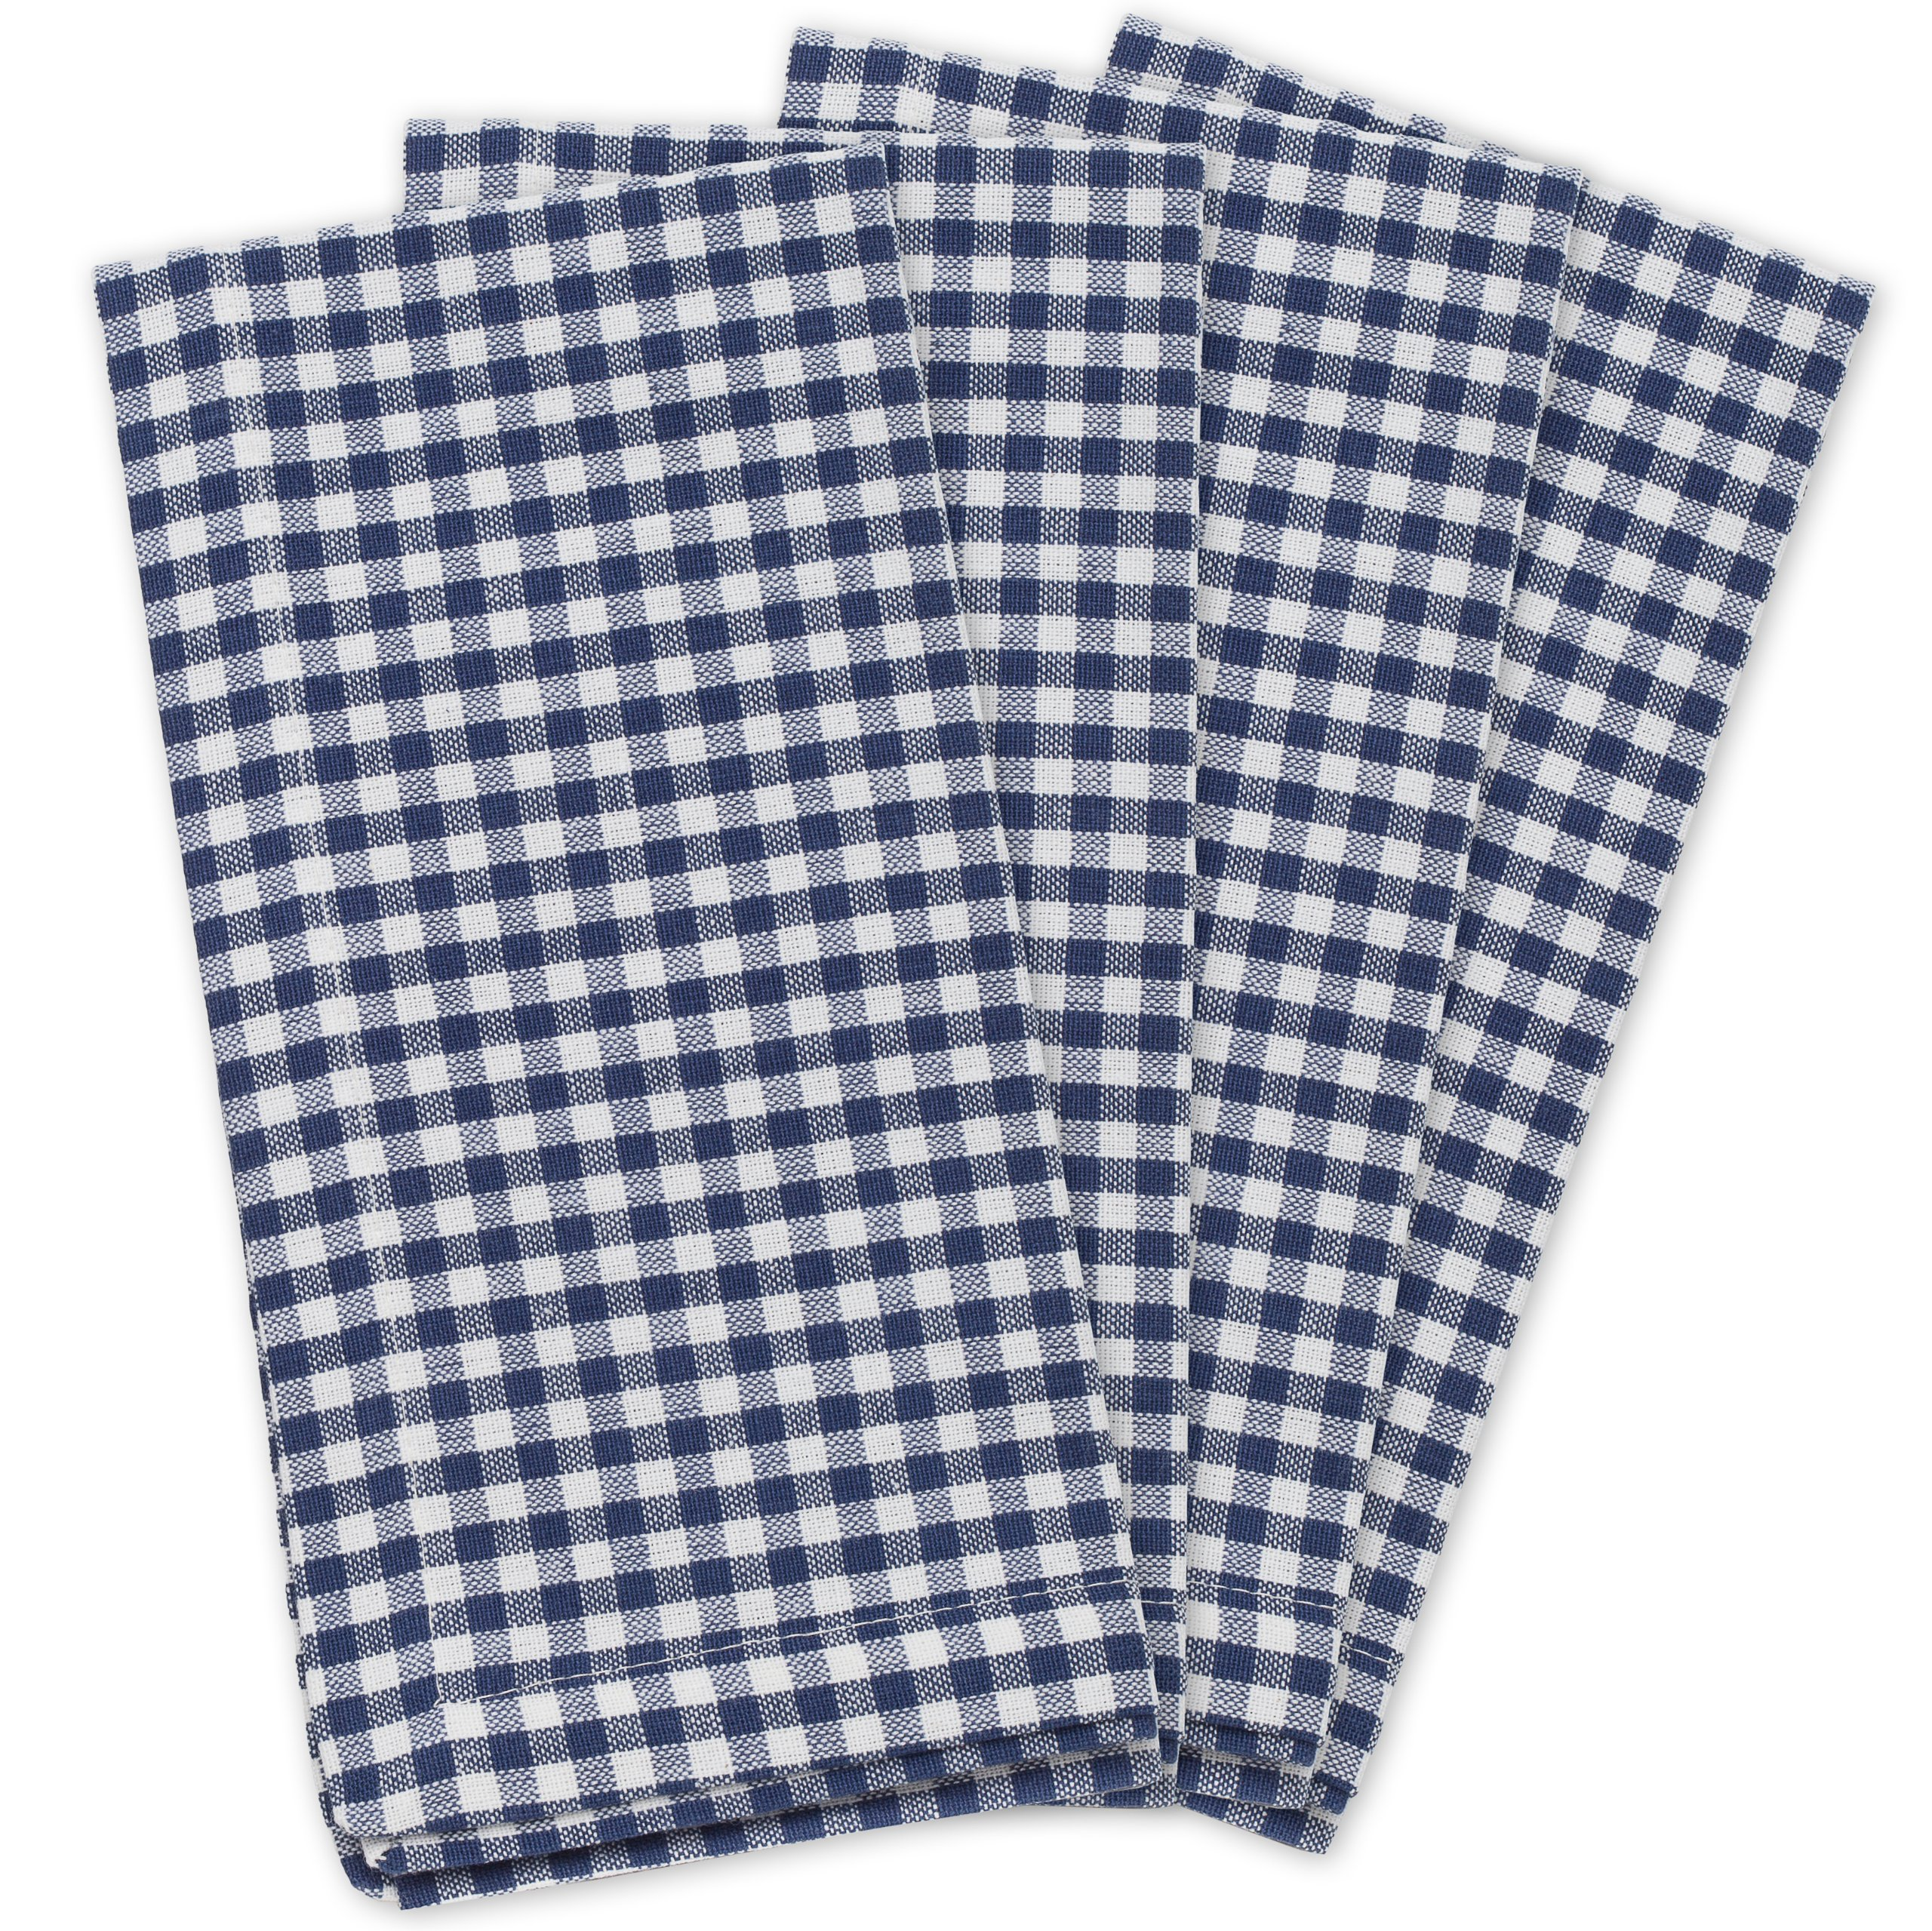 KAF Home Gingham Napkins in Navy & White Woven Check, Set of 4, 19'' by 19'', Easy Care, Machine Washable